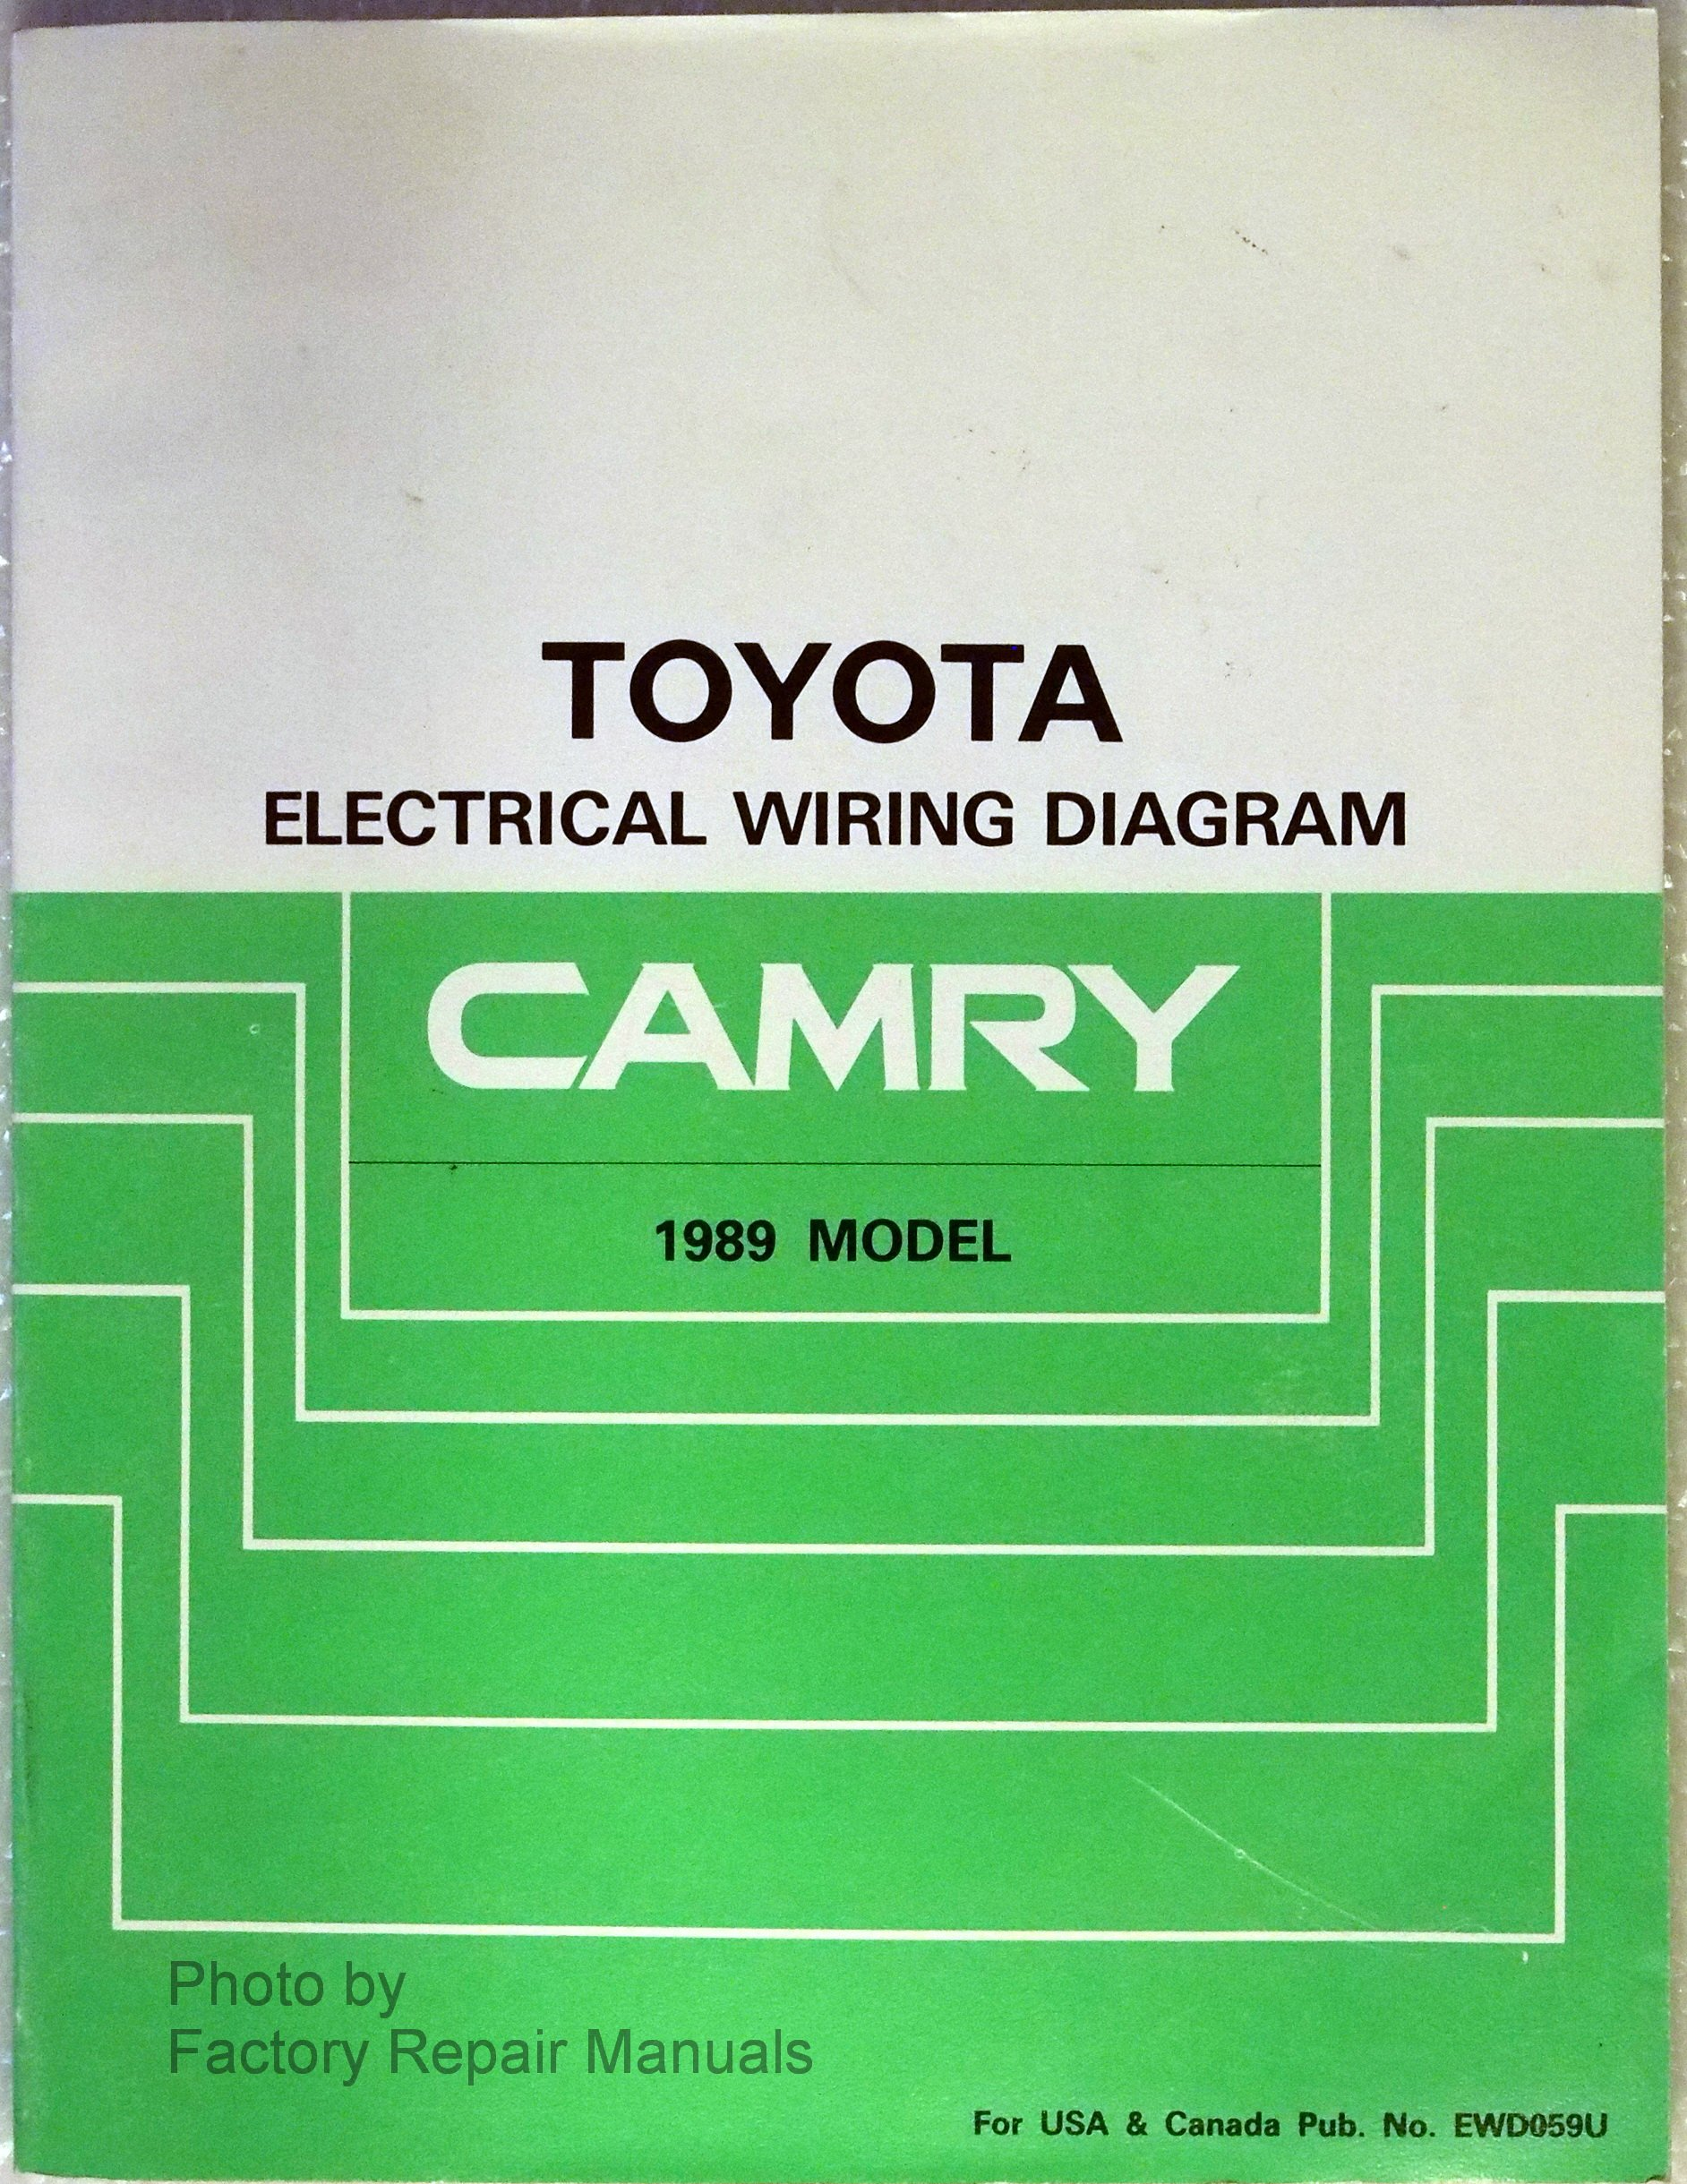 Toyota Camry Electrical Wiring Diagram Library Altezza 1989 Manual Model